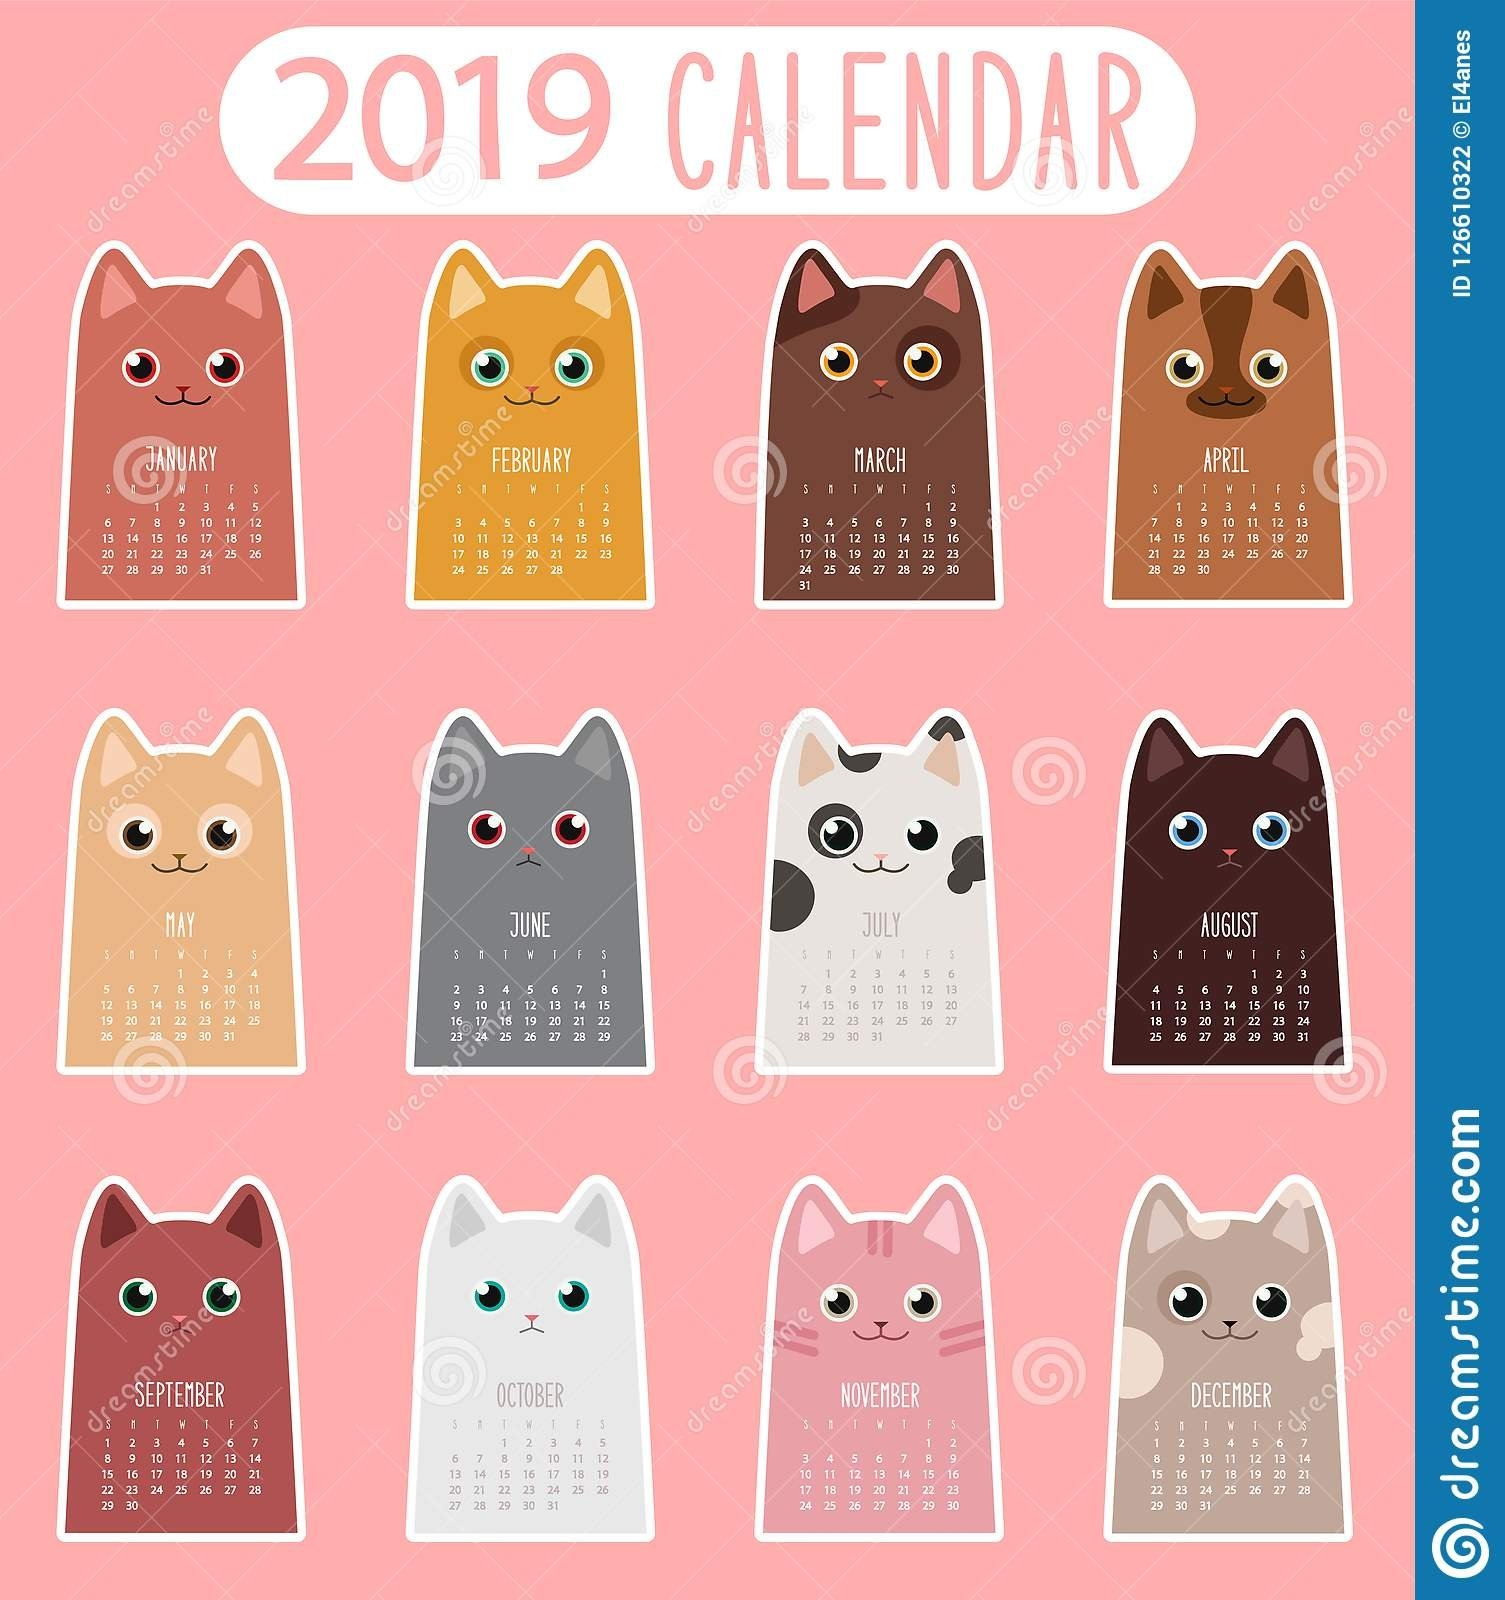 Cat Calendar 2019 Stock Vector. Illustration Of Sticker - 126610322 Calendar 2019 Cats